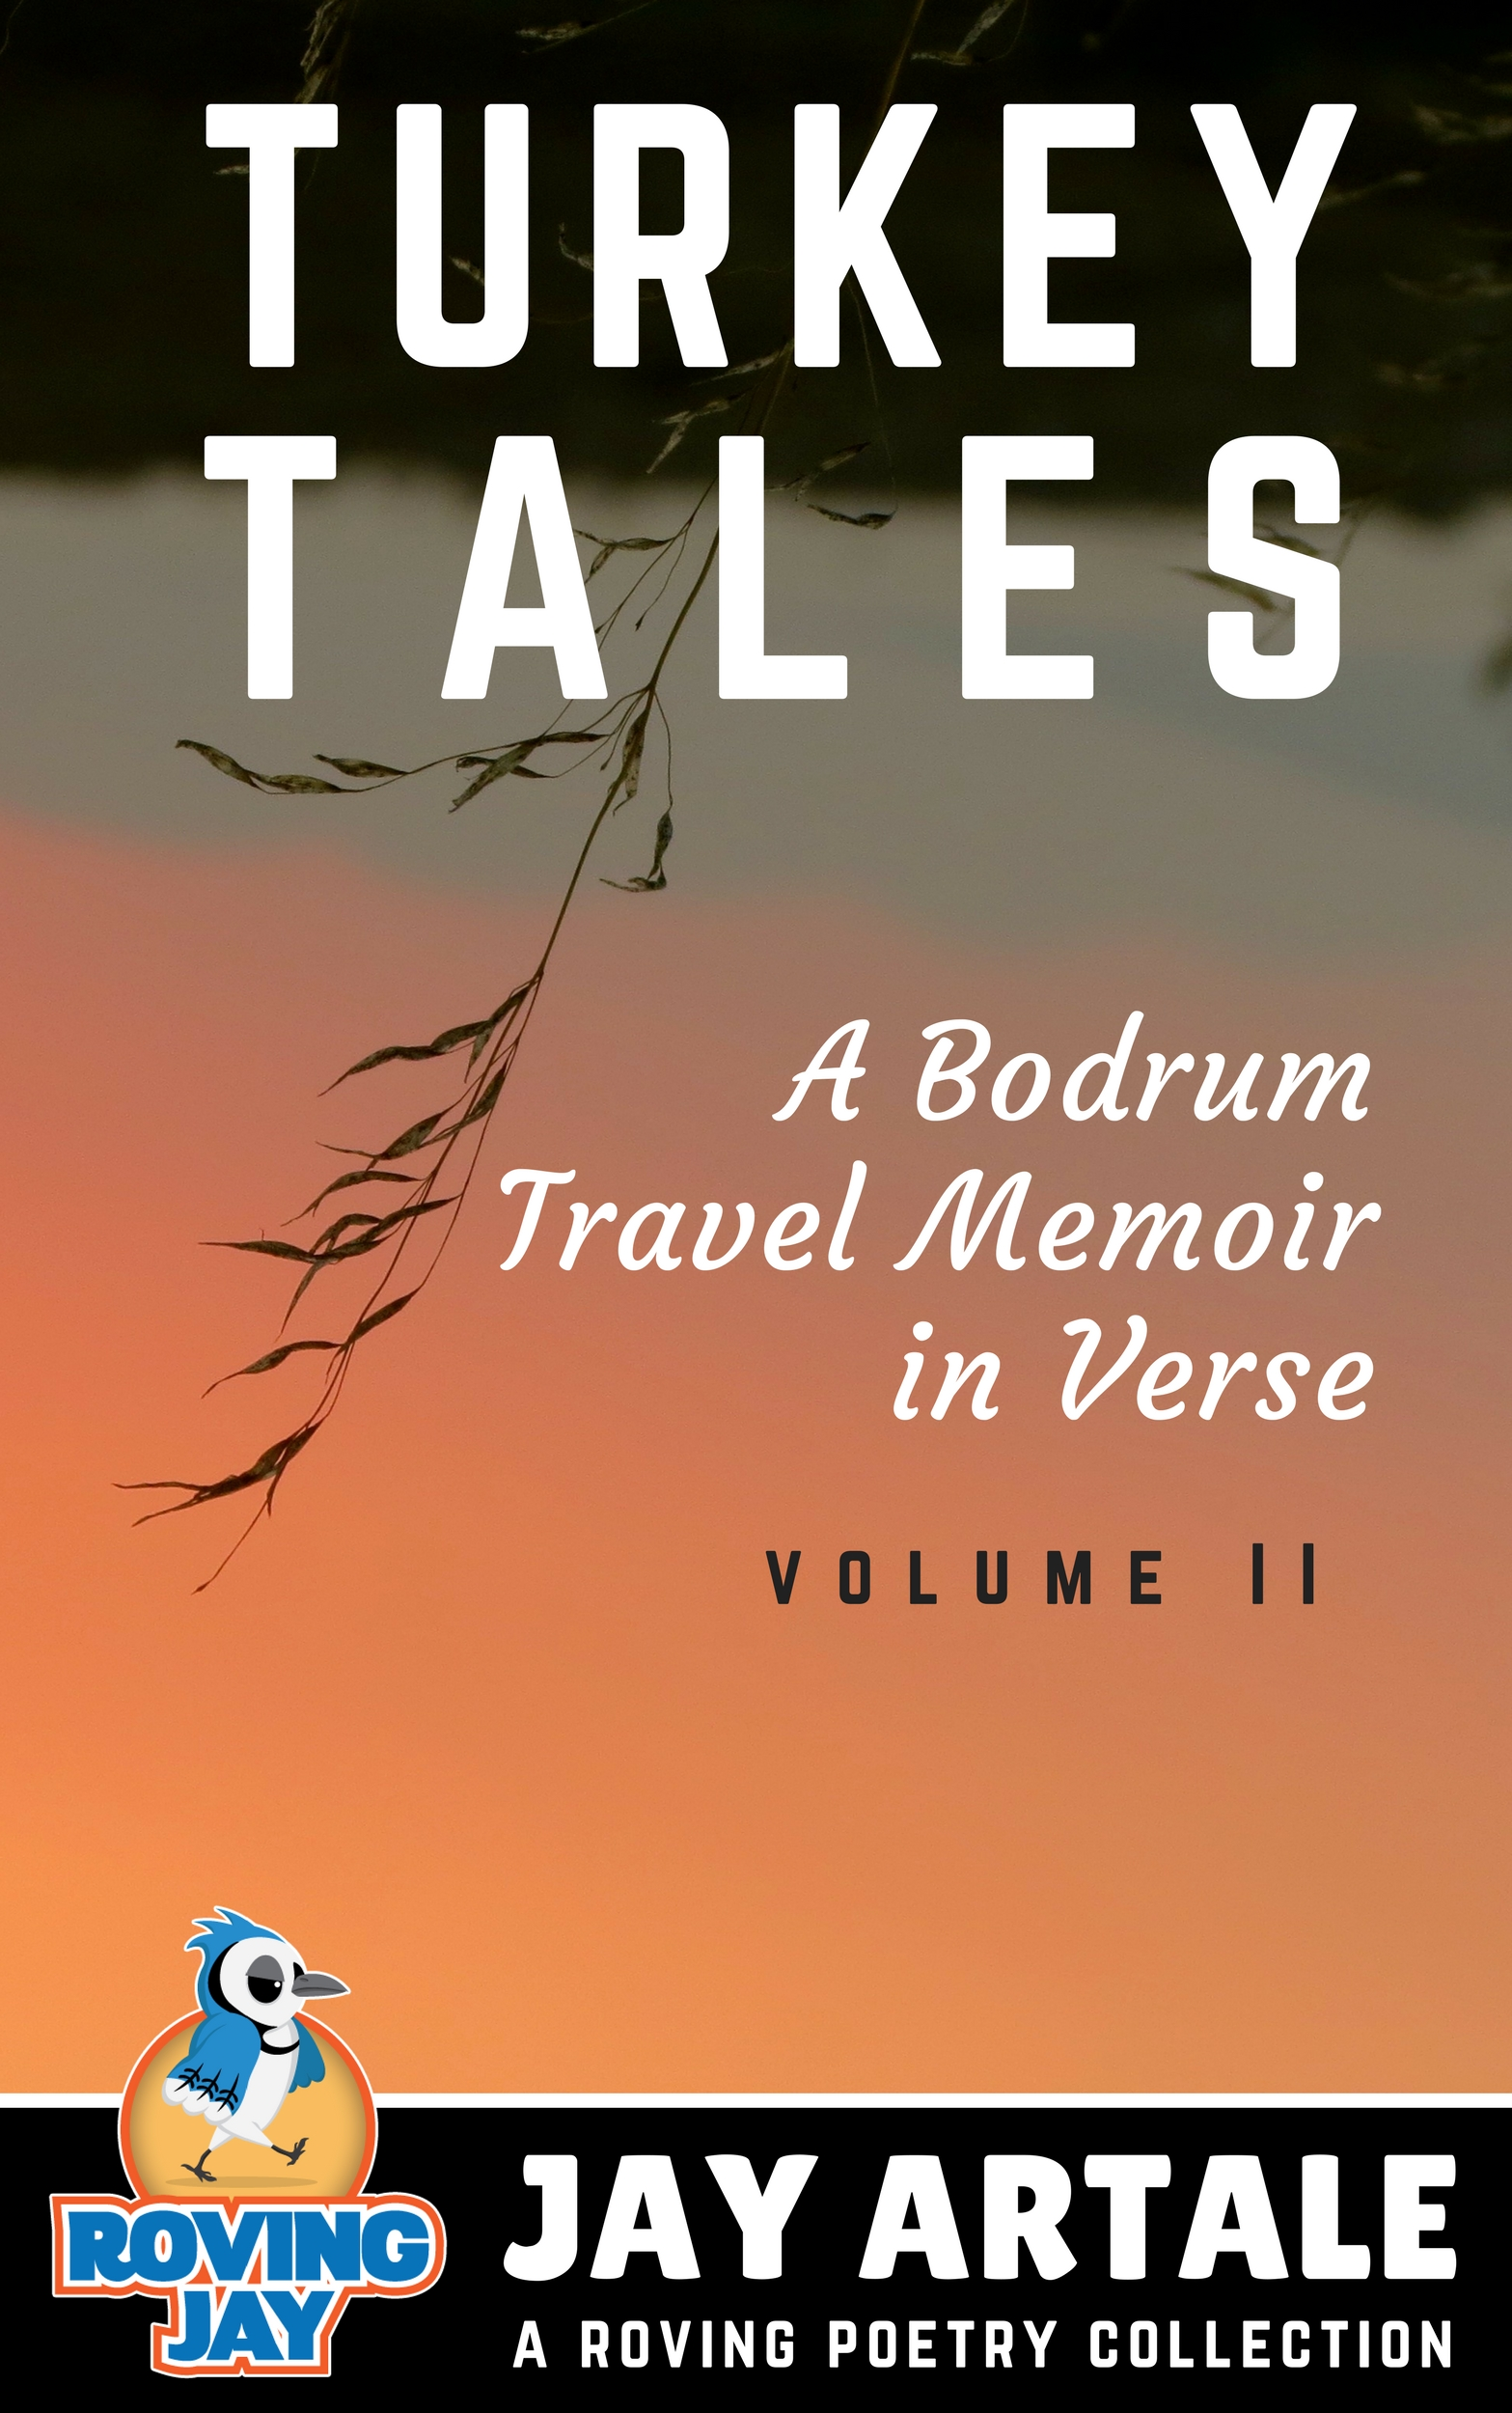 Turkey Tales A Bodrum Travel Memoir in Verse Volume 2